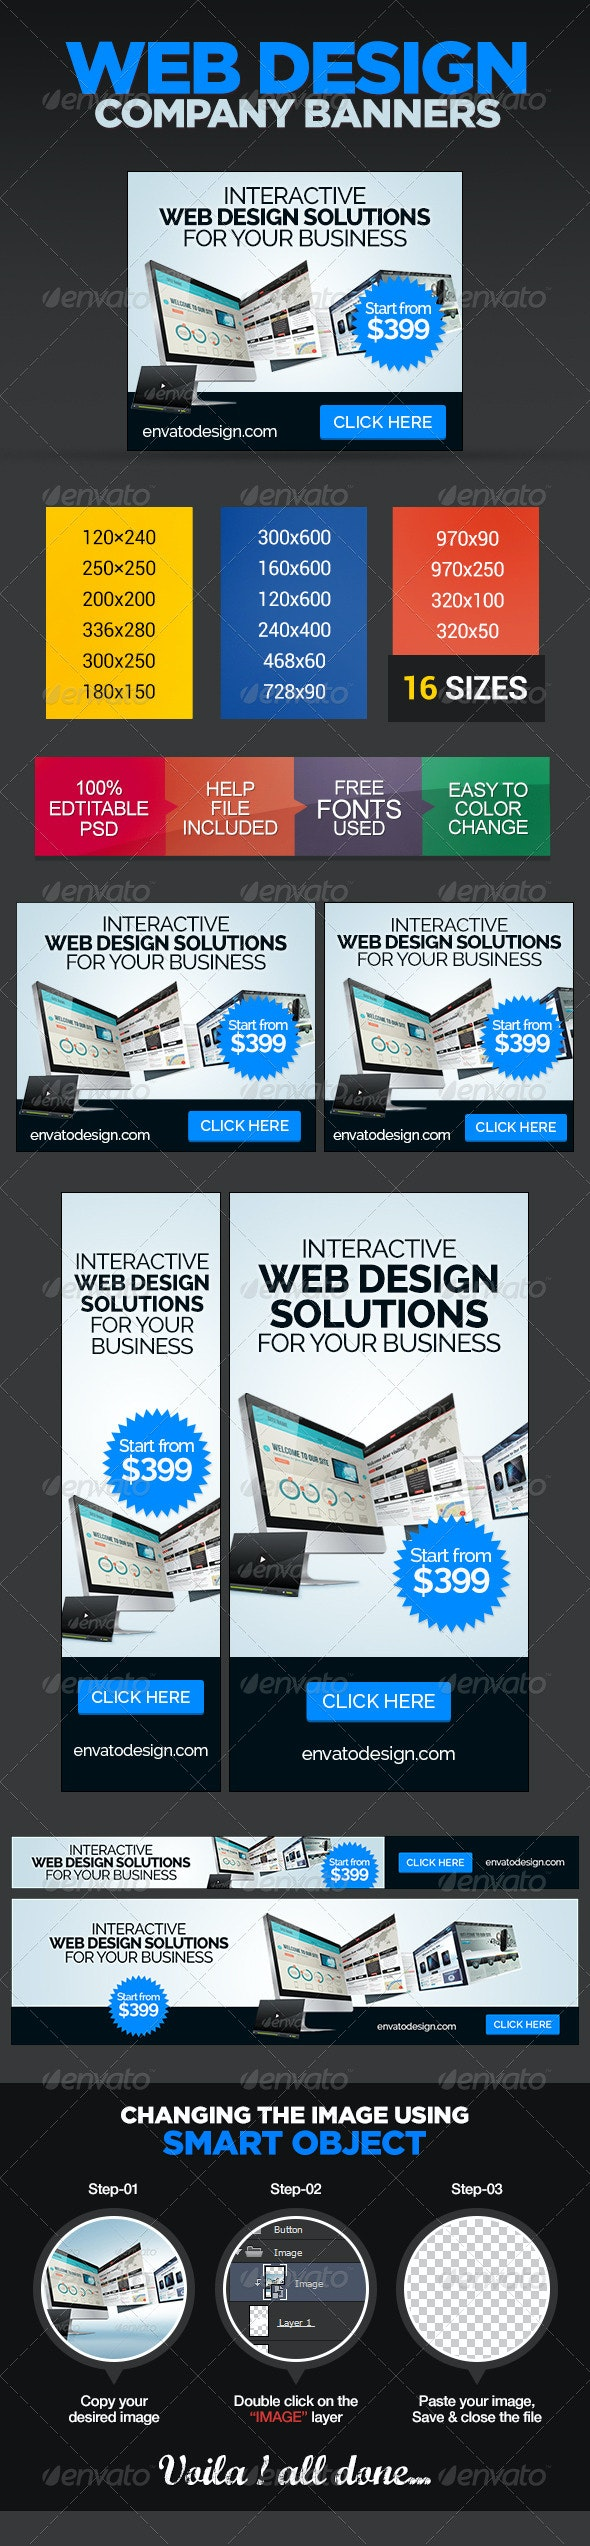 Design Company Banner Ads - Banners & Ads Web Elements